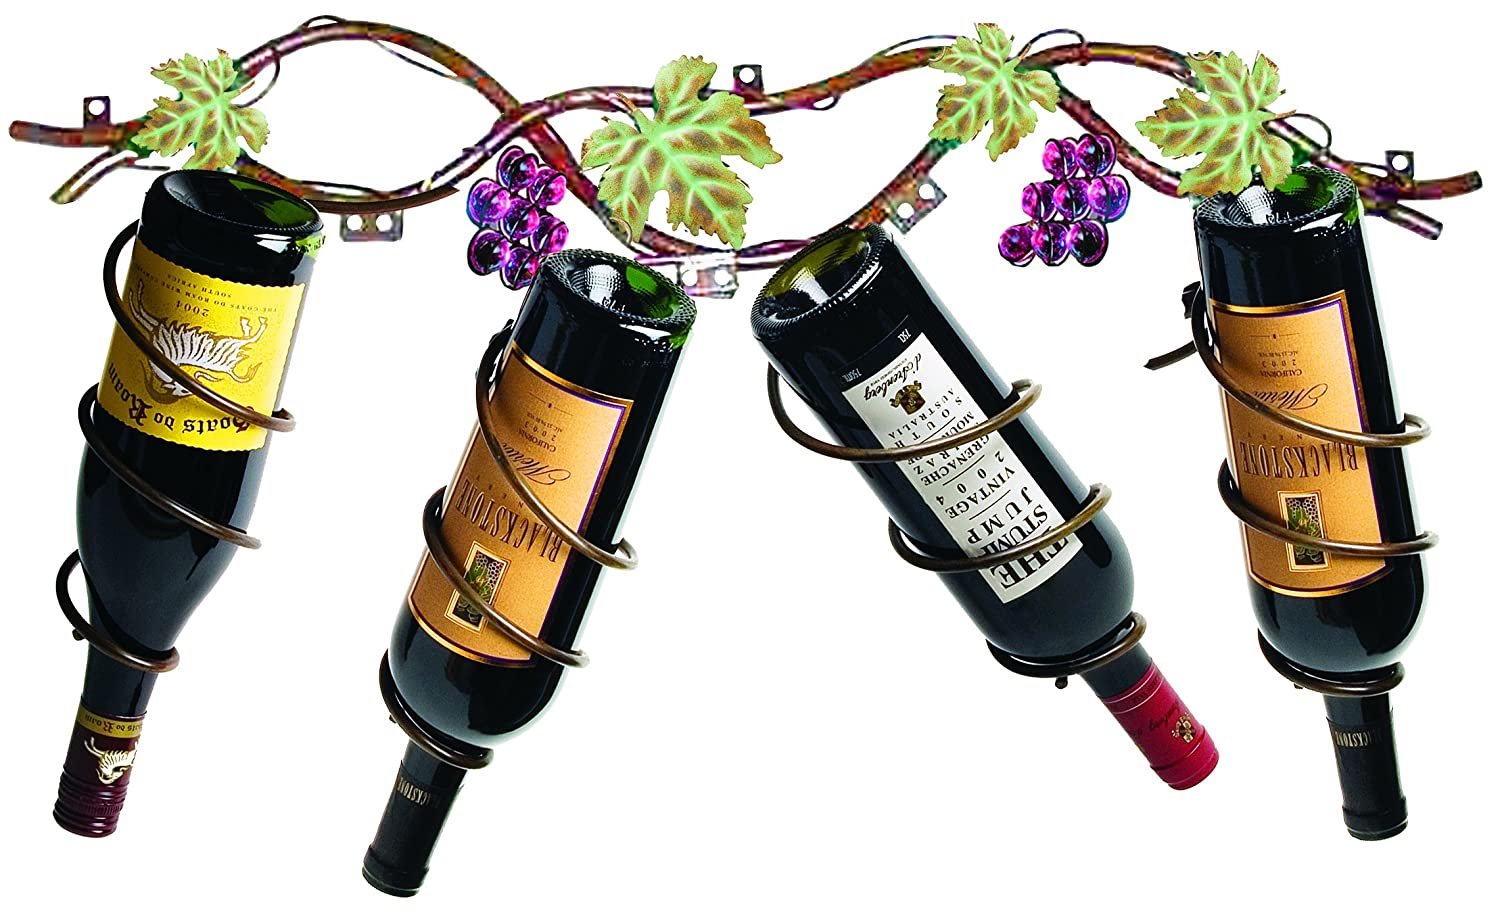 1 to 4 Bottle Wall-mounted Rack  Purple glass beads and green leaves accent